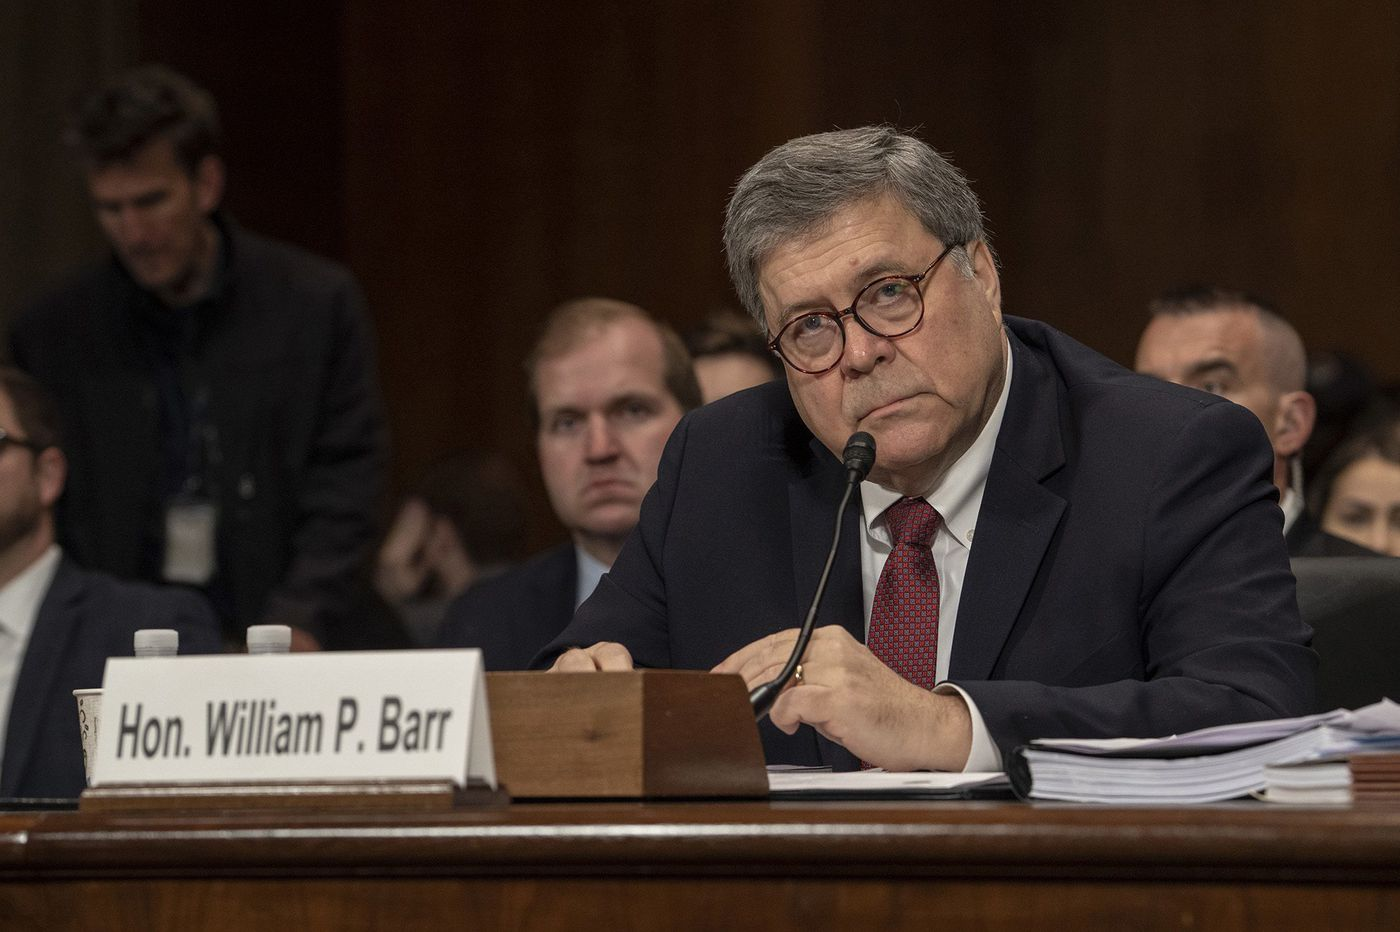 House votes to enforce Barr and McGahn subpoenas; Pelosi says Dems 'not even close' to starting impeachment